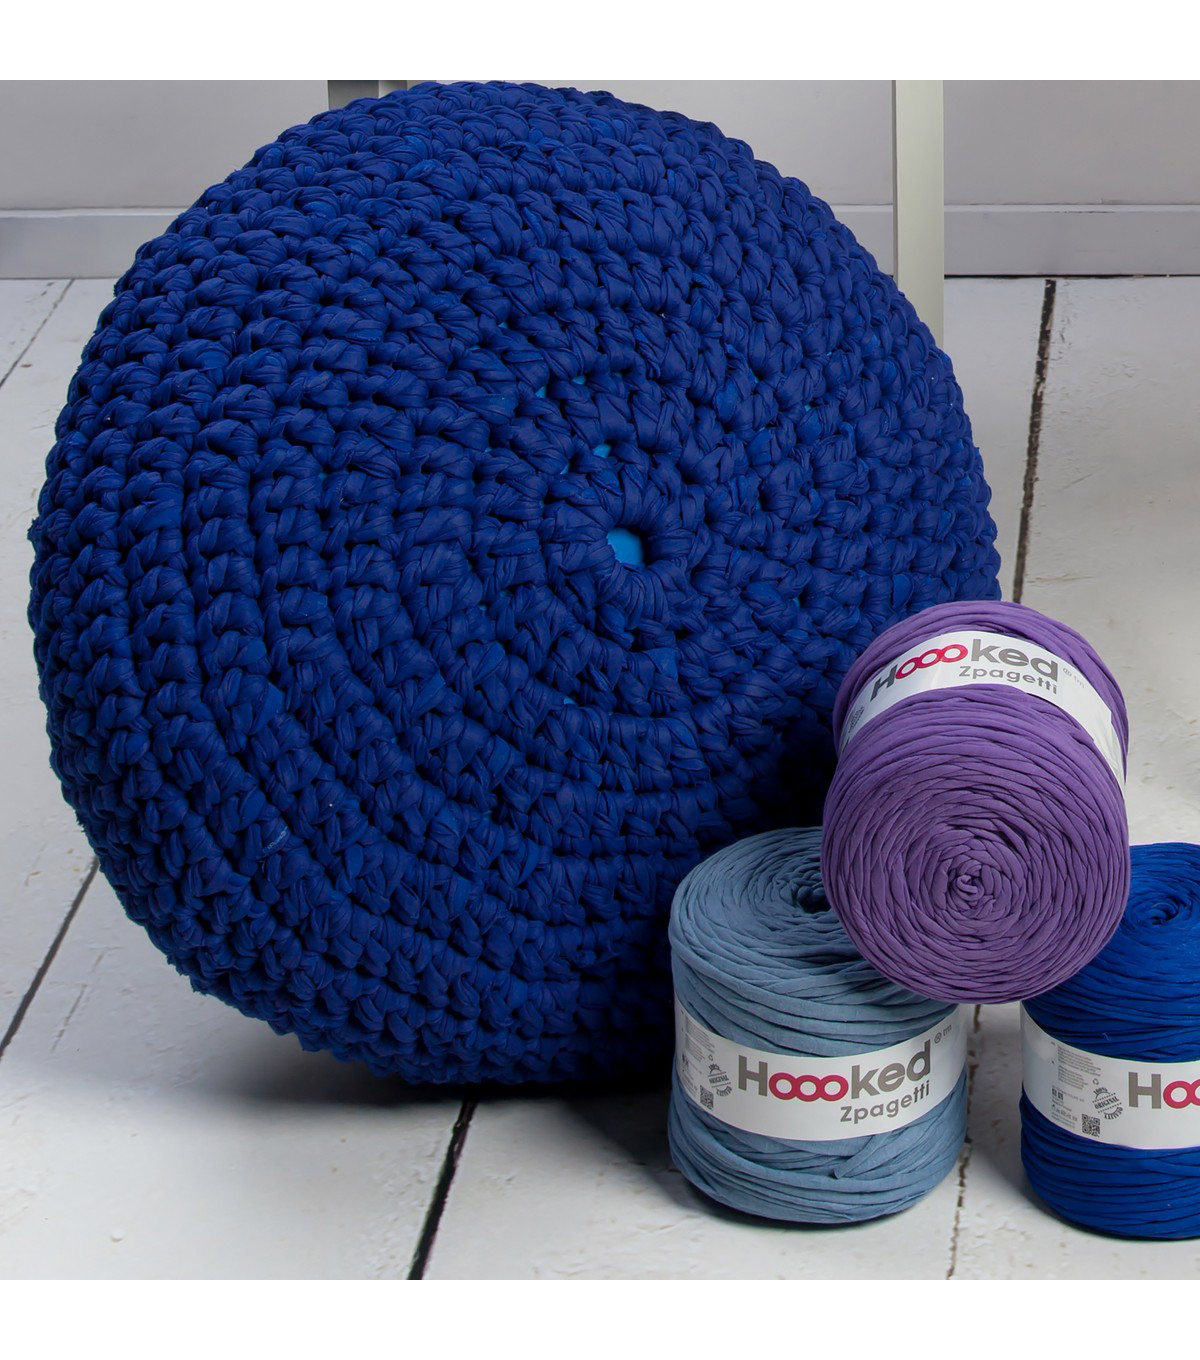 Hoooked Knit & Crochet Pouf Kit with Zpagetti Yarn-Cherry Blossom